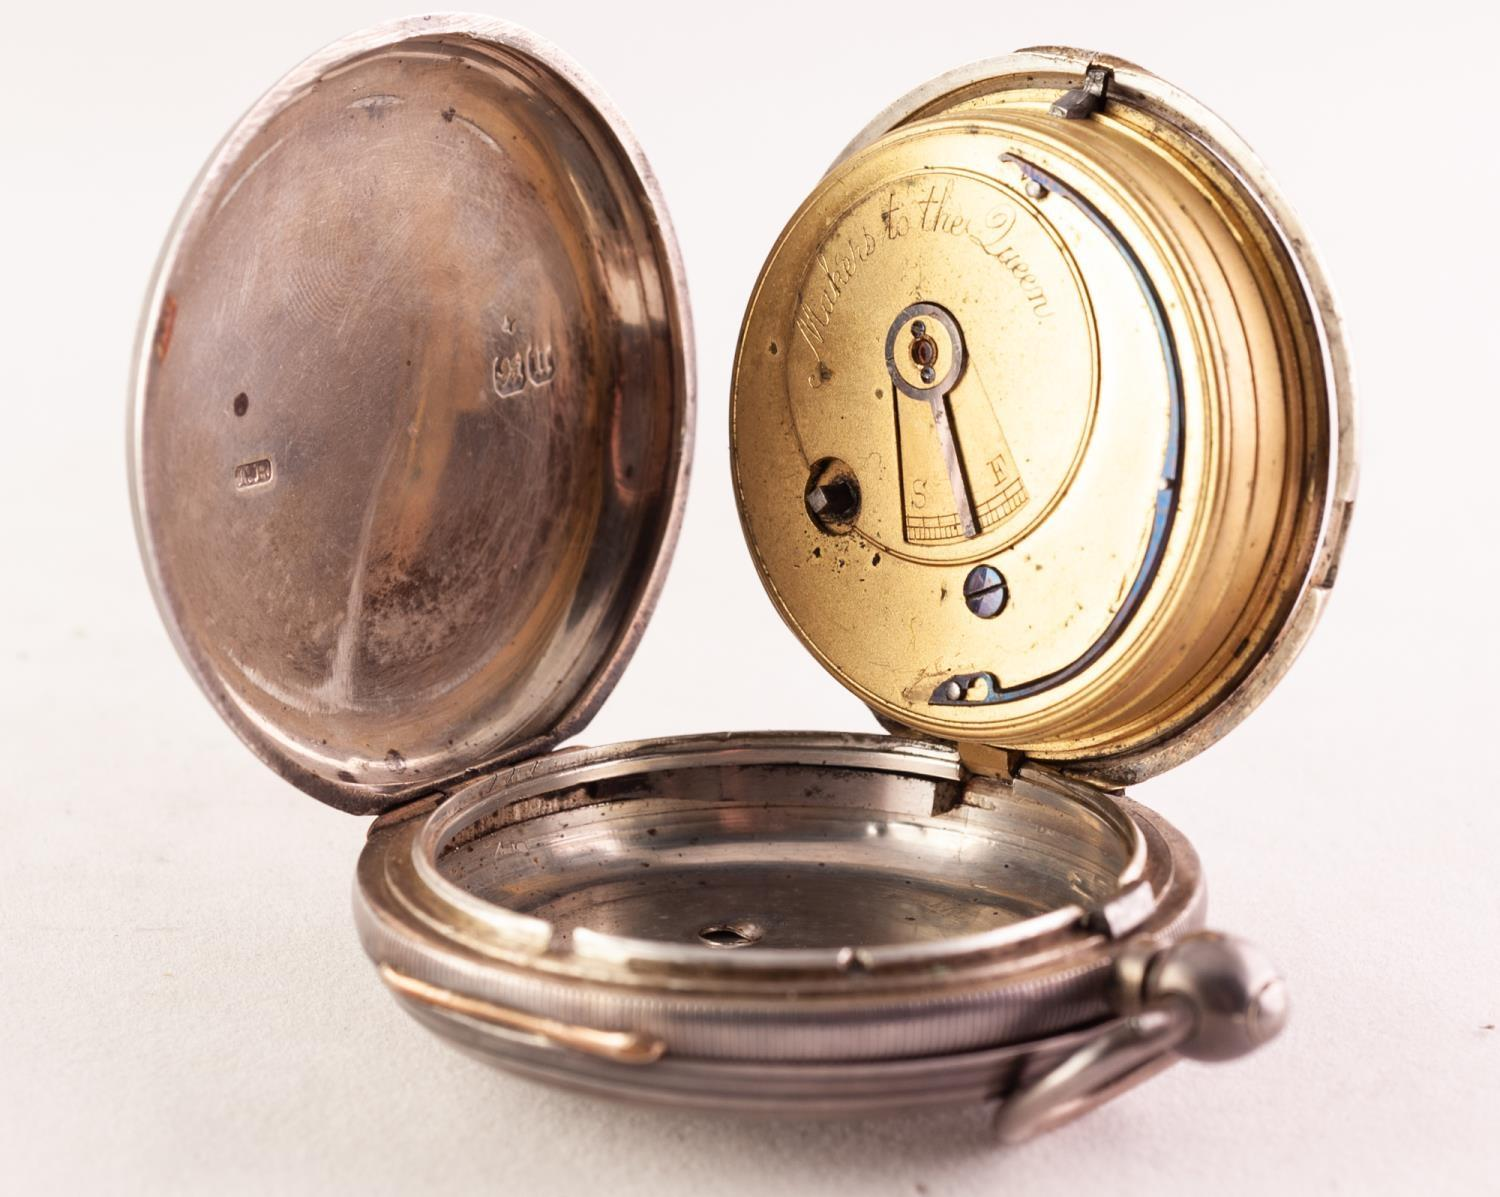 Lot 54 - A LATE VICTORIAN SILVER HUNTER POCKET WATCH, THOS RUSSELL & SONS, 12 CHURCH ST, LIVERPOOL The